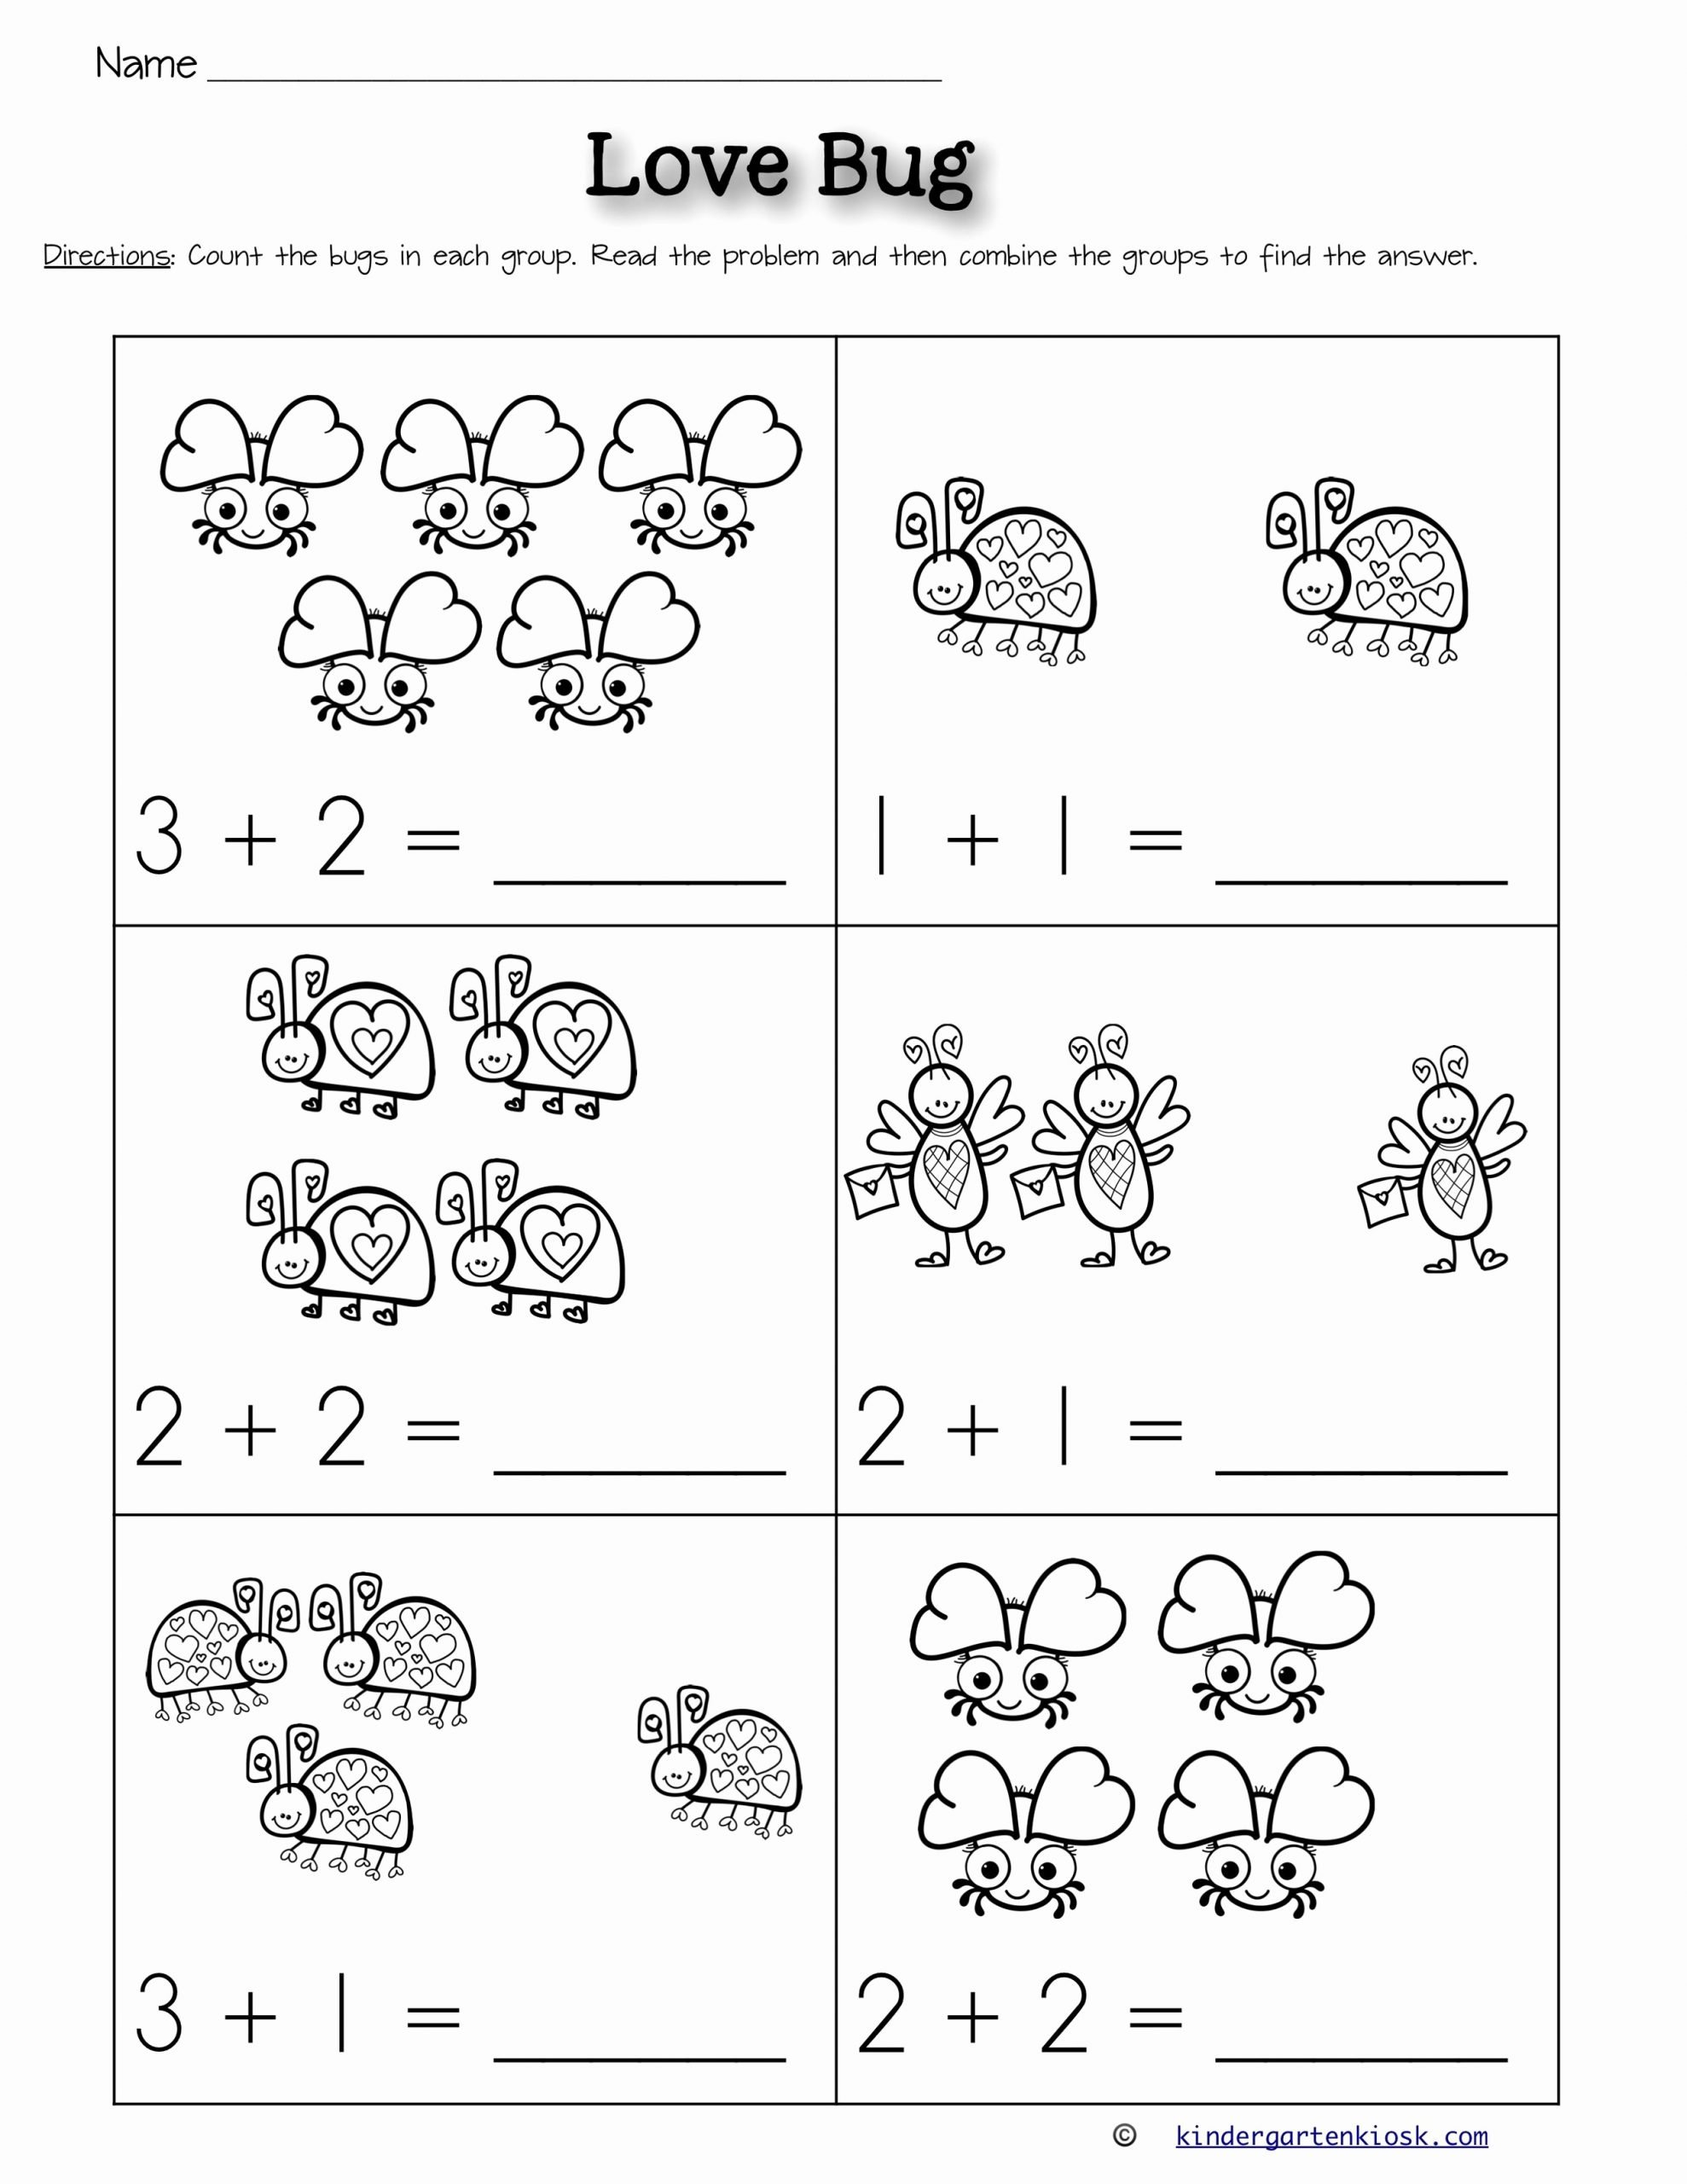 Mathematics Worksheets for Preschoolers Ideas Addition 0 5 Worksheets February